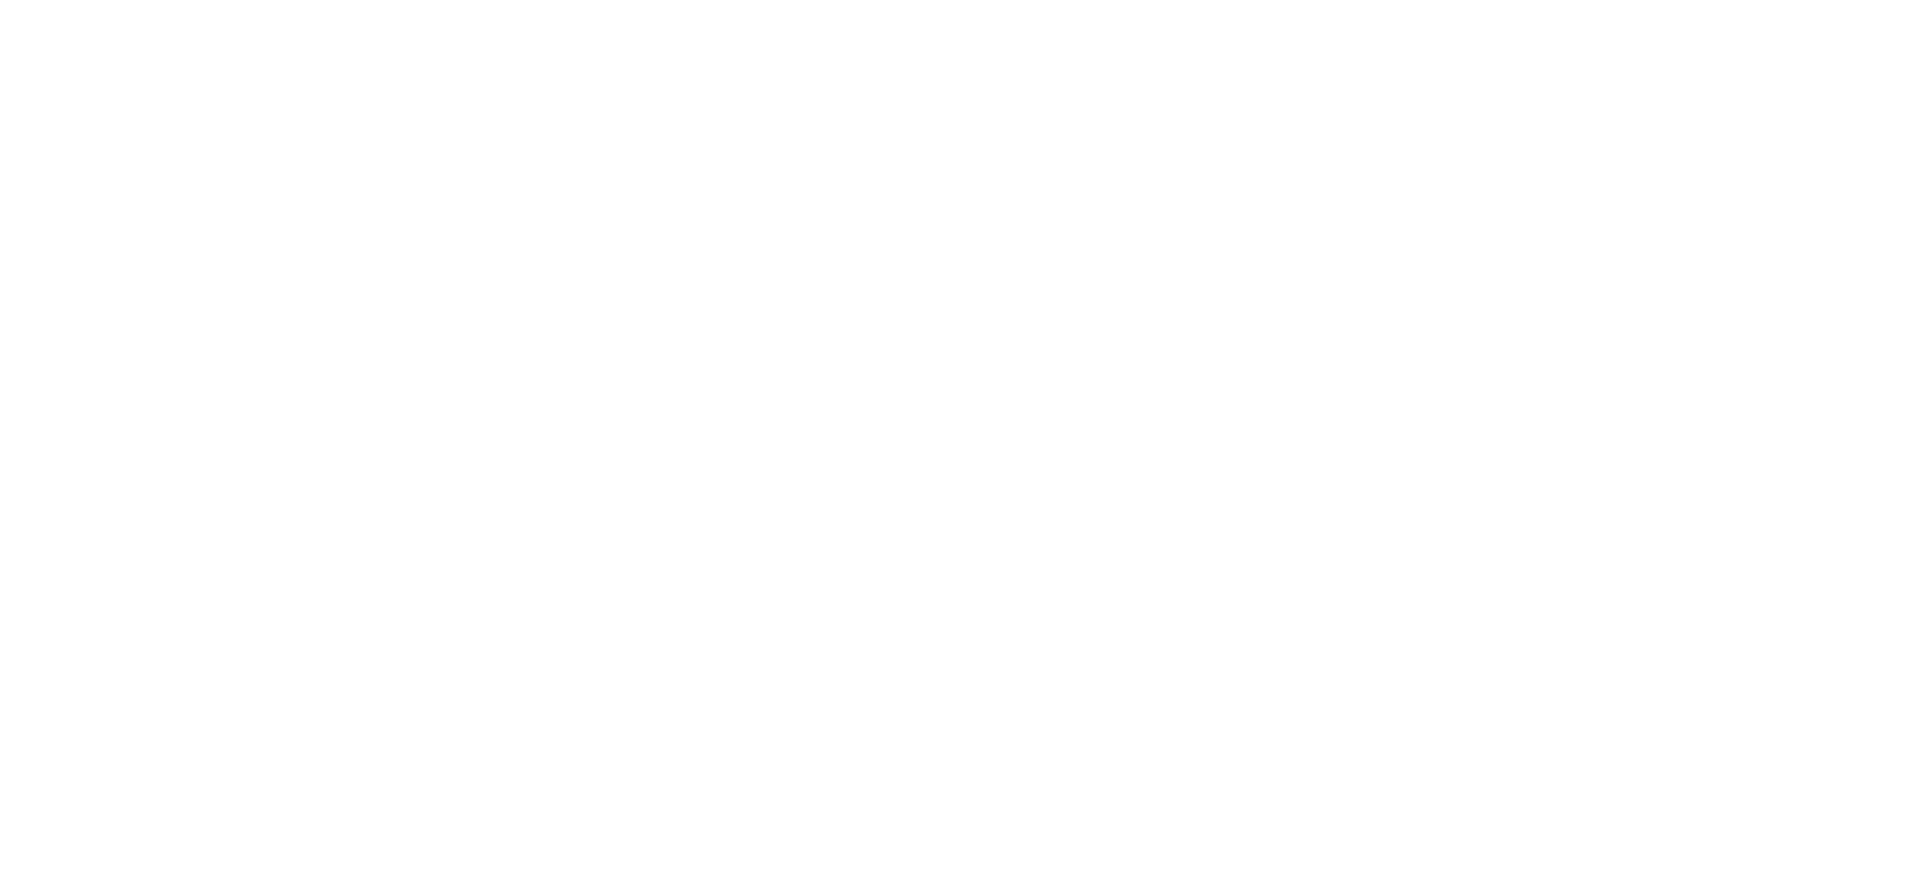 title-disability-services-and-wellness